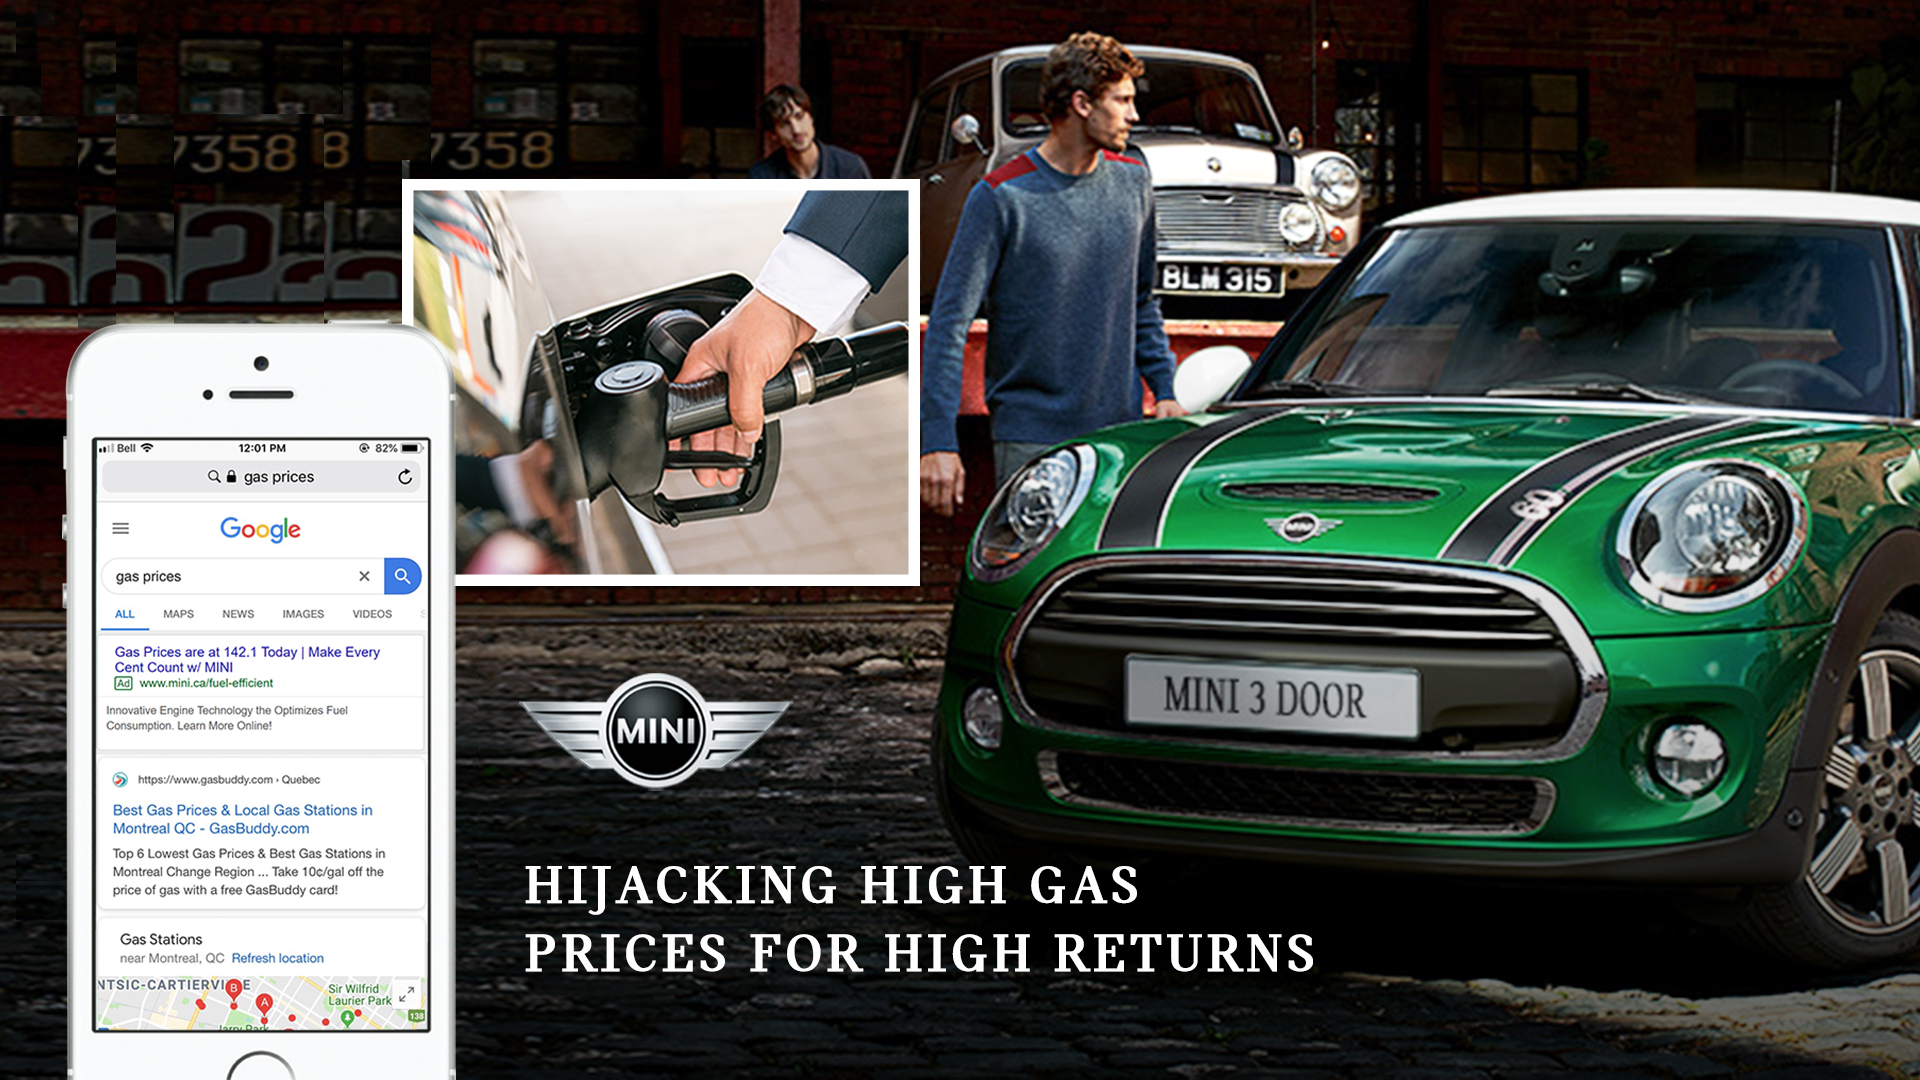 Hijacking High Gas Prices for High Returns